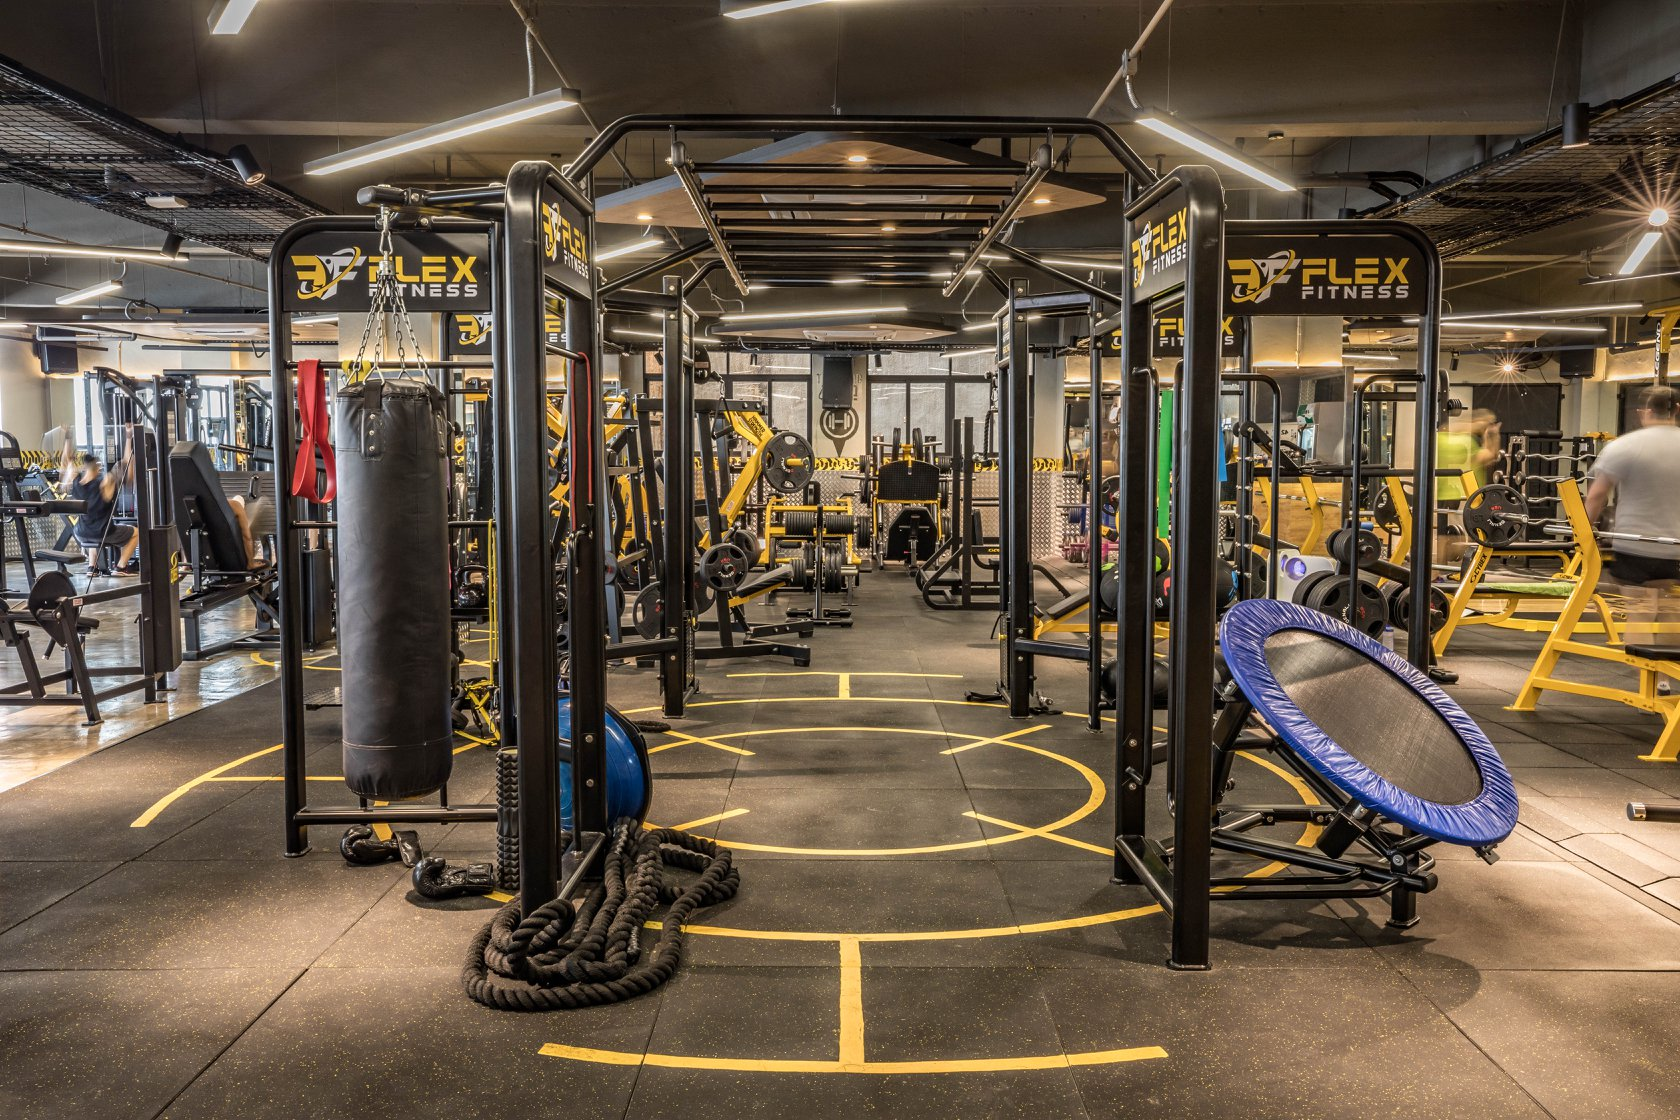 flex fitness gym macau functional boxing ropes